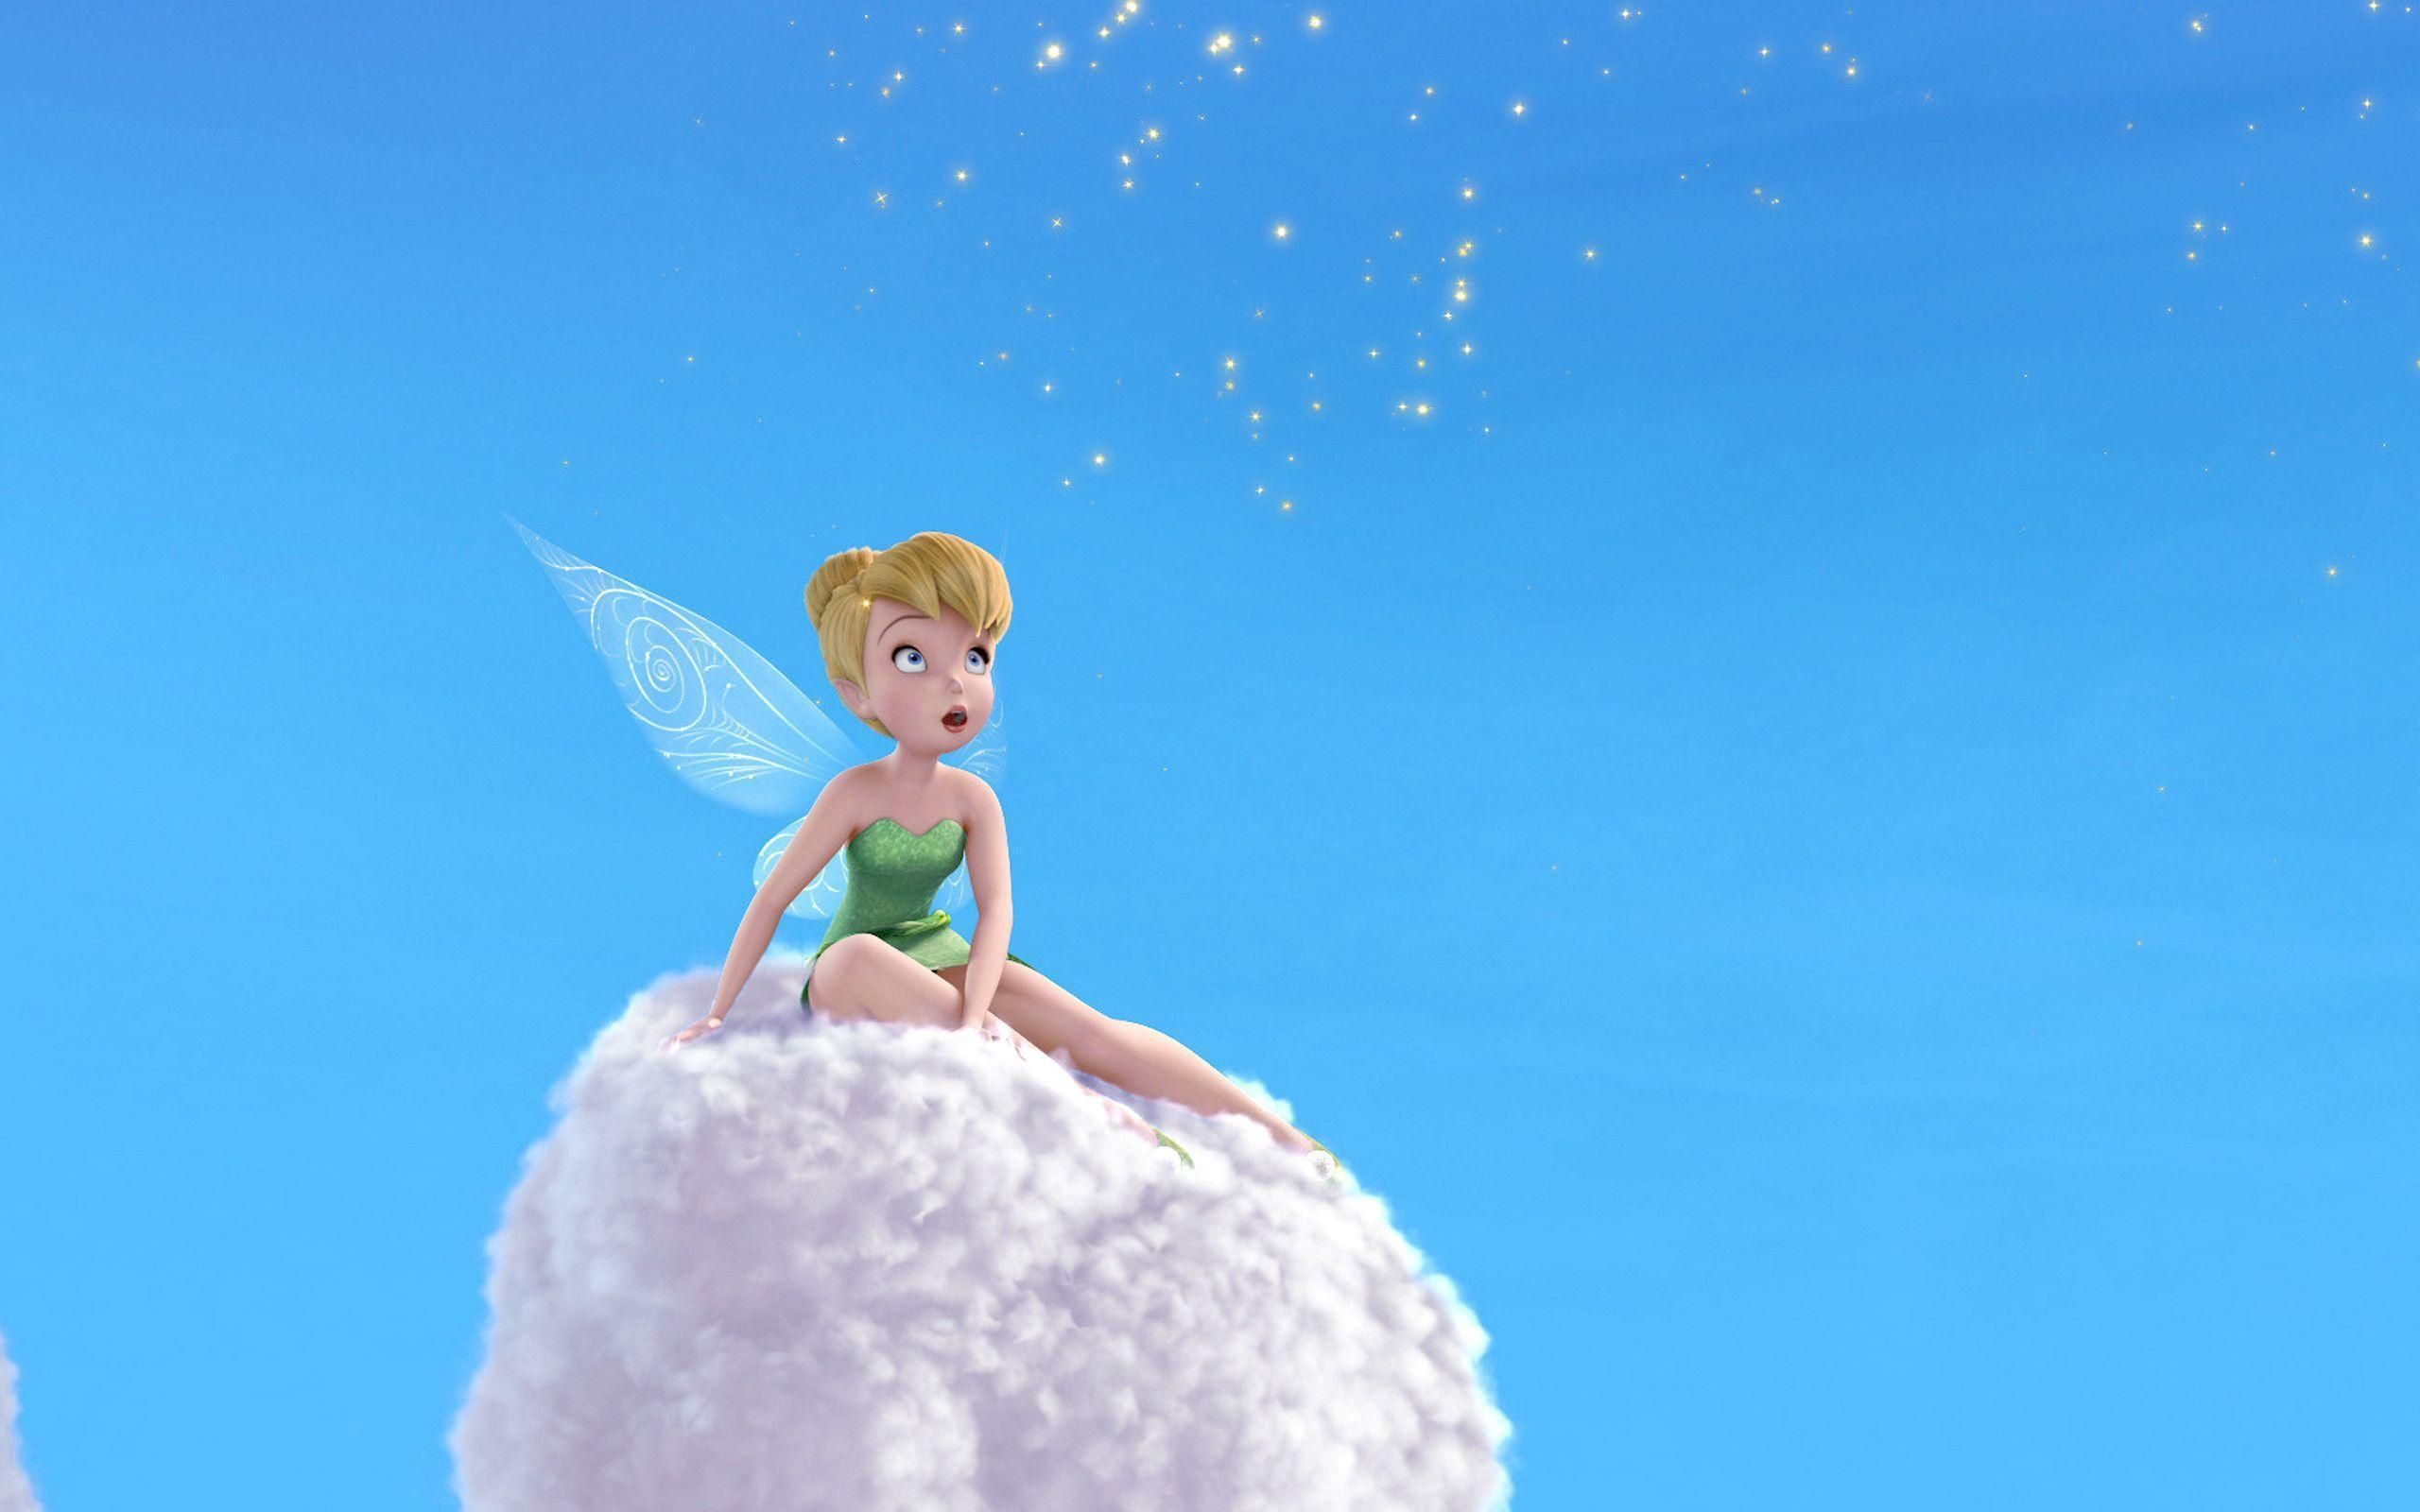 Tinkerbell Wallpapers Hd Tinkerbell Pictures Tinkerbell Wallpaper Tinkerbell